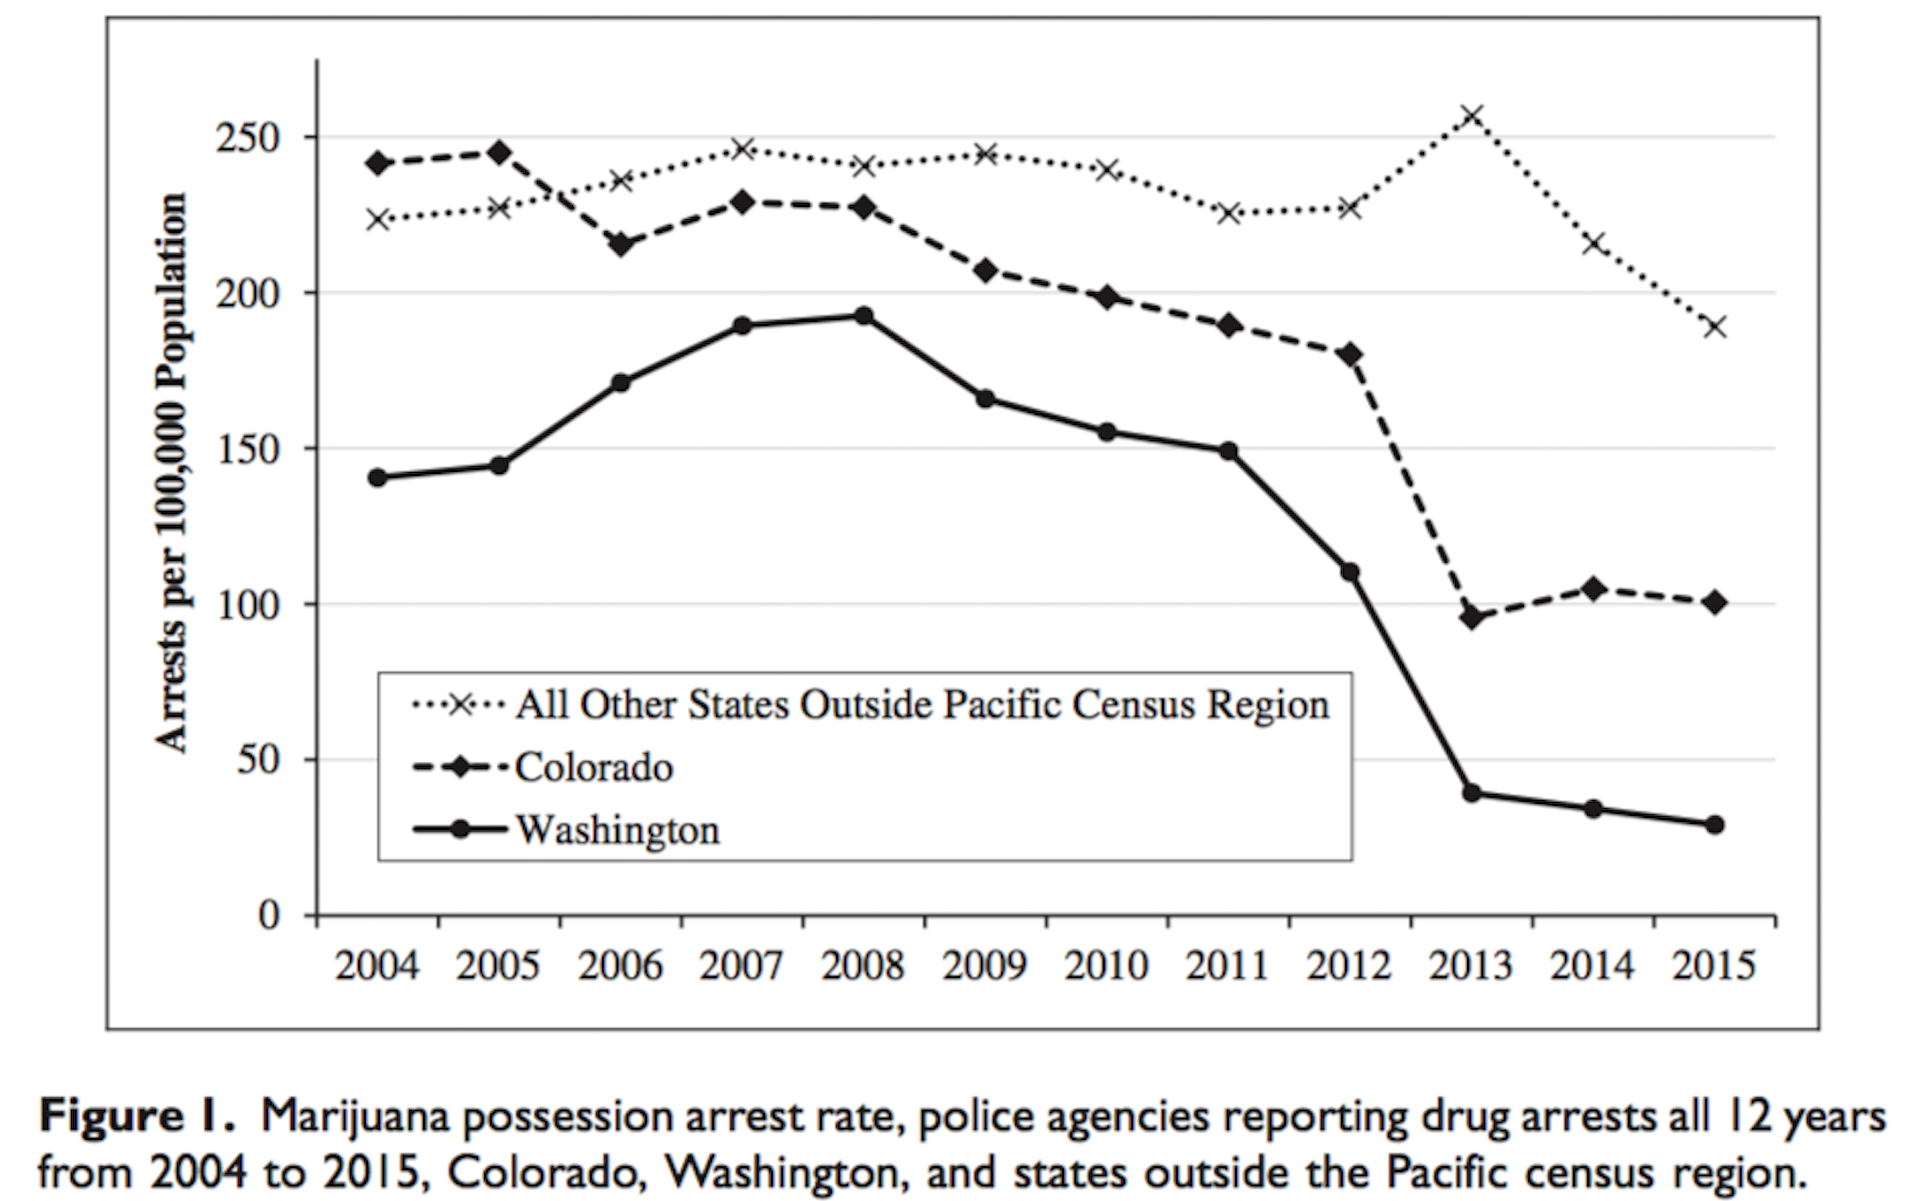 No surprise: Marijuana arrests drop after legalization. (image via Police Quarterly)